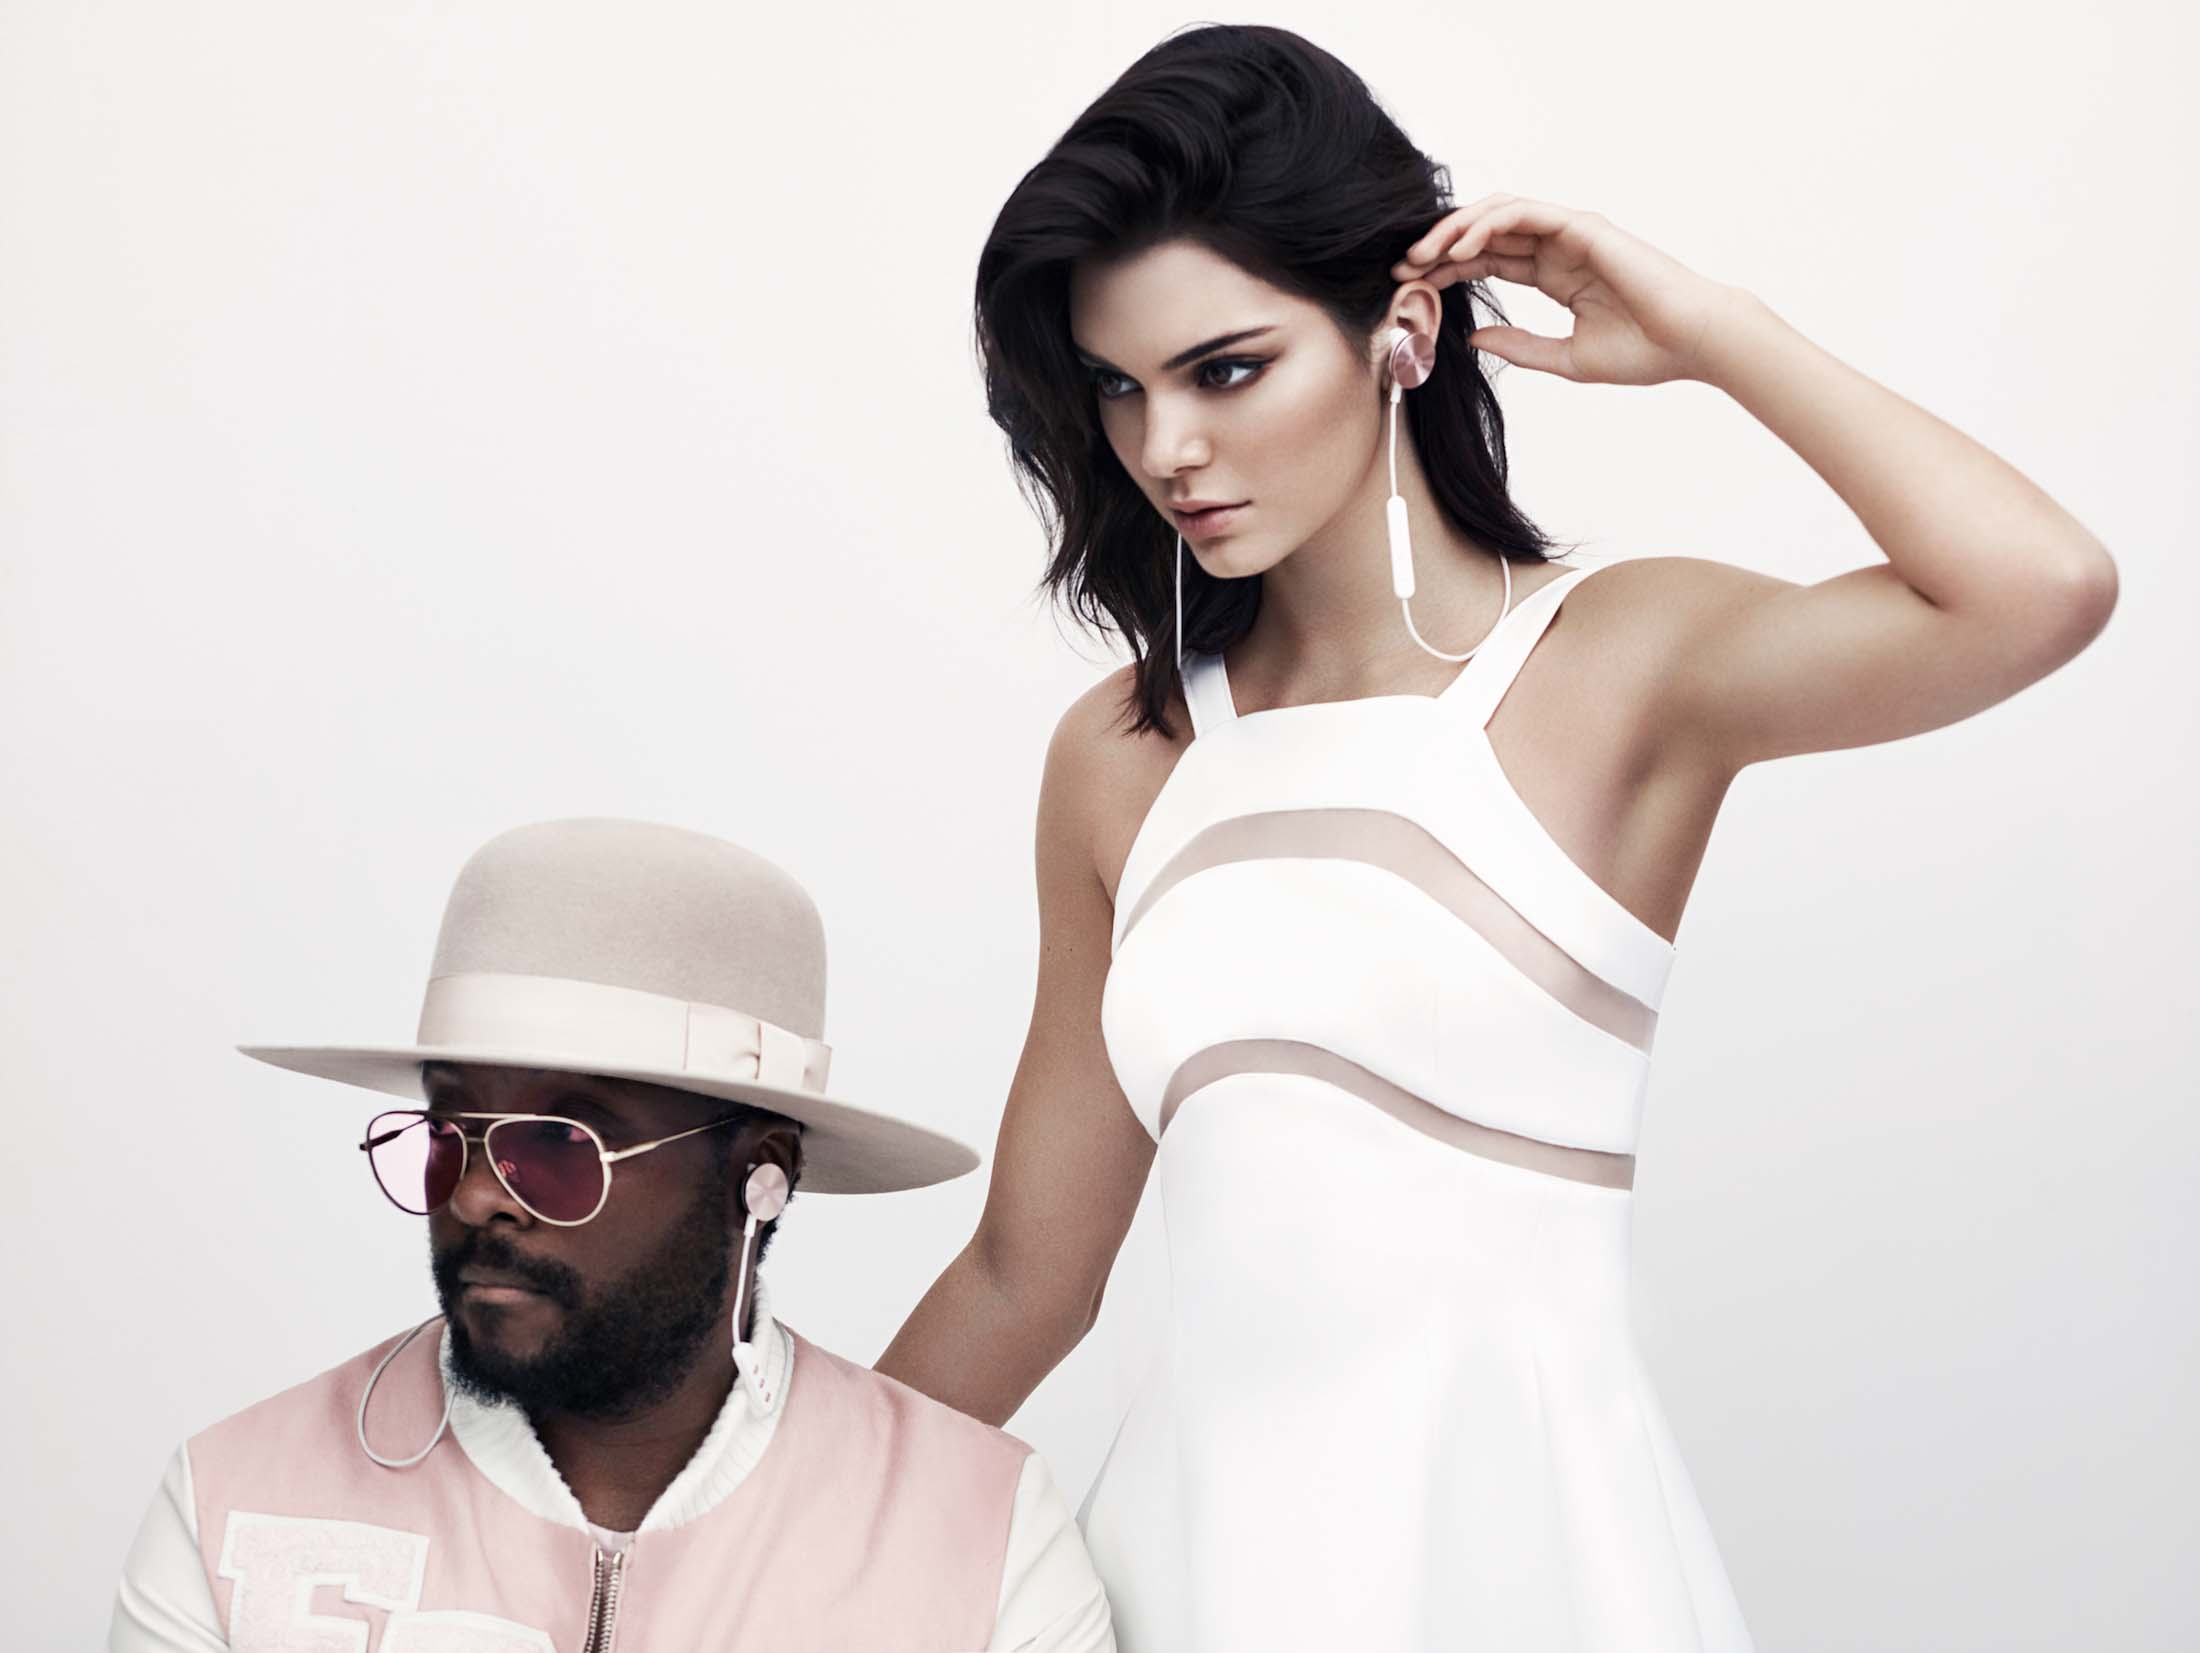 Will.i.am and Kendall Jenner. Source: i.am+